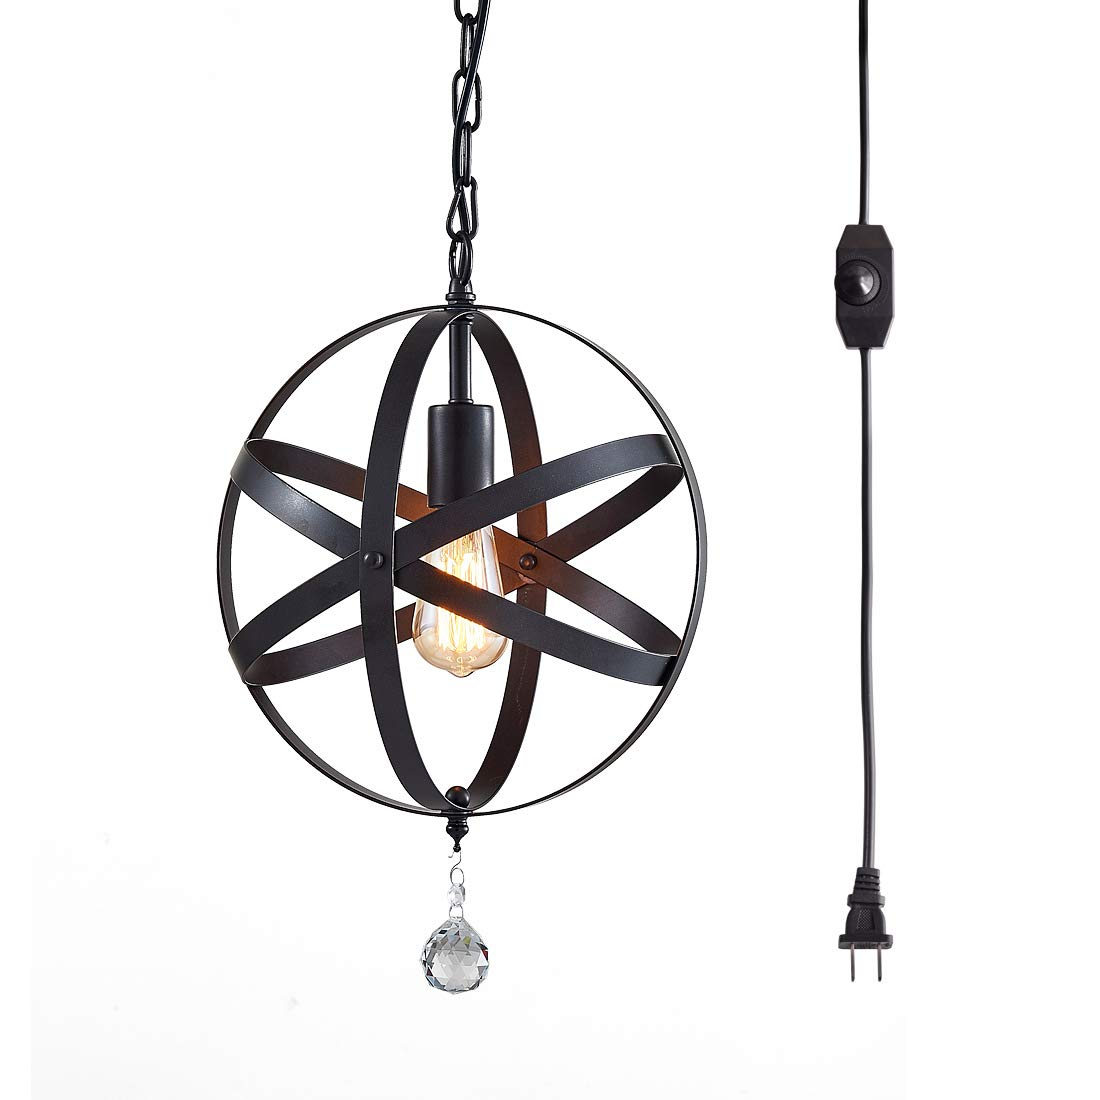 Plug in Pendant Light,Industrial Style Globe Pendant Lighting,16.4 Ft Hanging Cord,Dimmable On/Off Switch,Black Metal,Vintage Chandelier,Island Lights Ceiling Light Fixture,UL Listed by TZOE